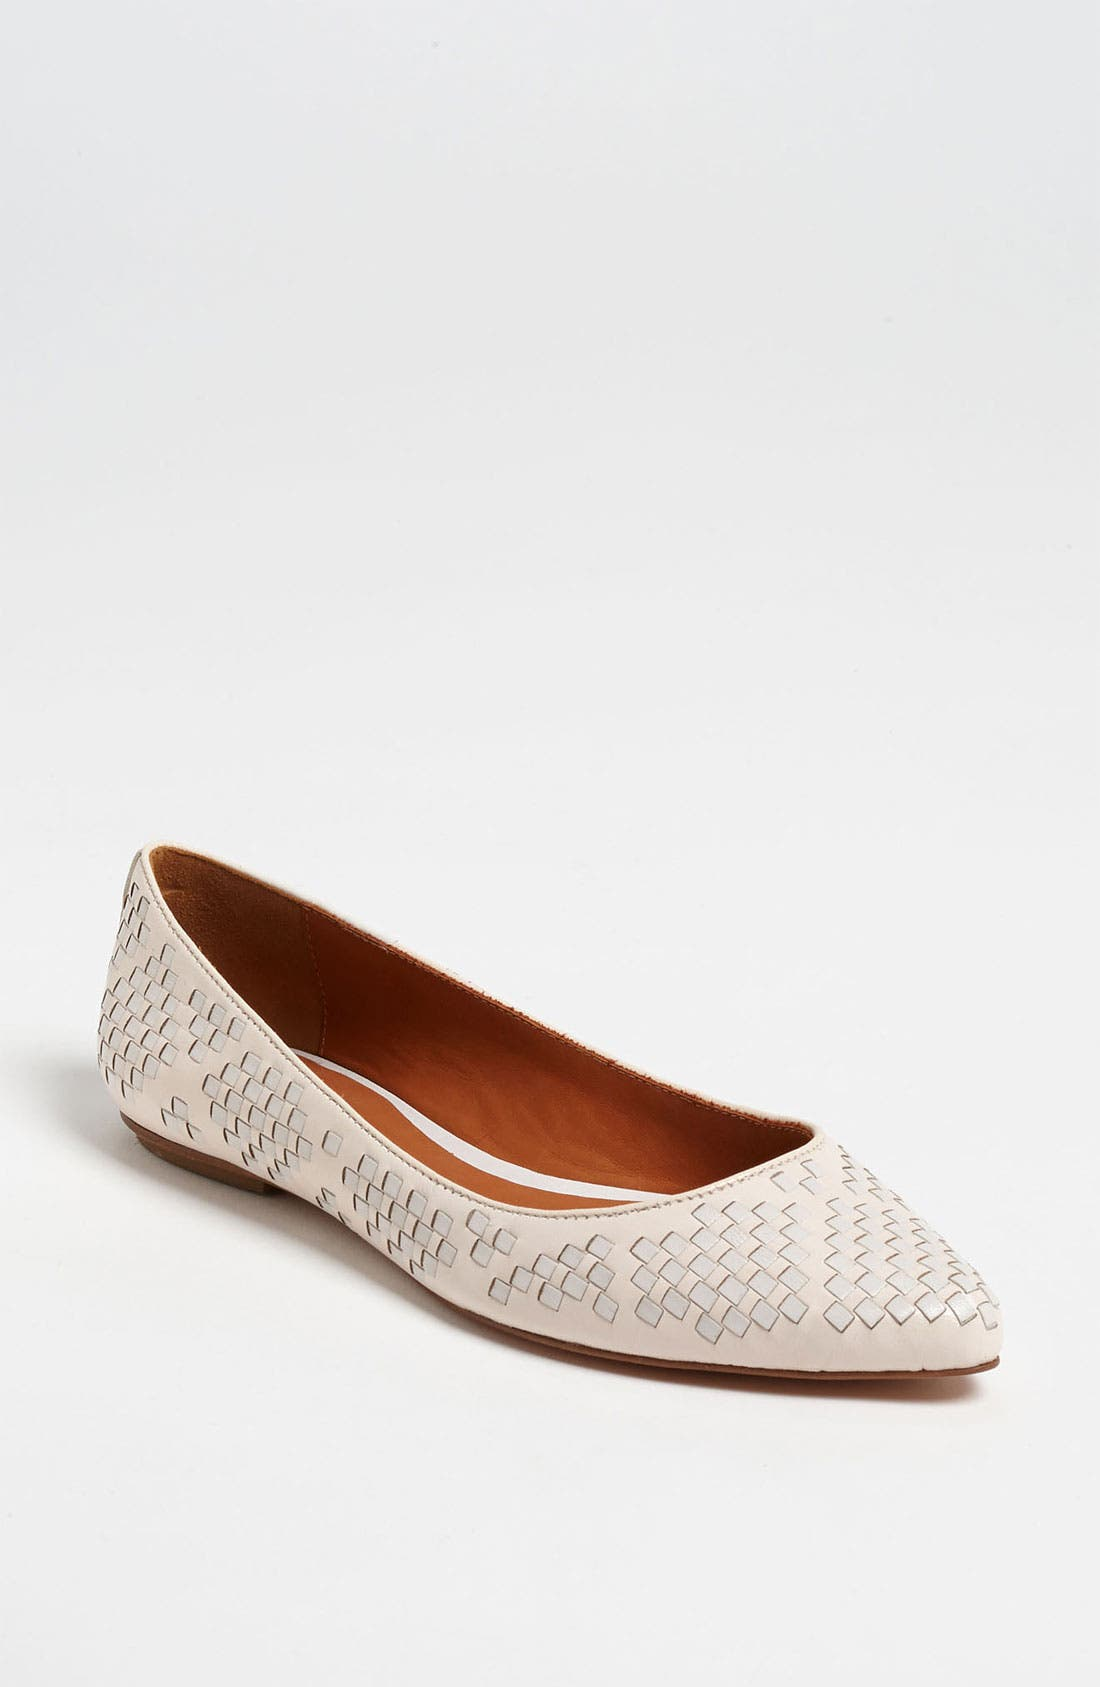 Alternate Image 1 Selected - Rebecca Minkoff 'Idelle' Flat (Online Only)